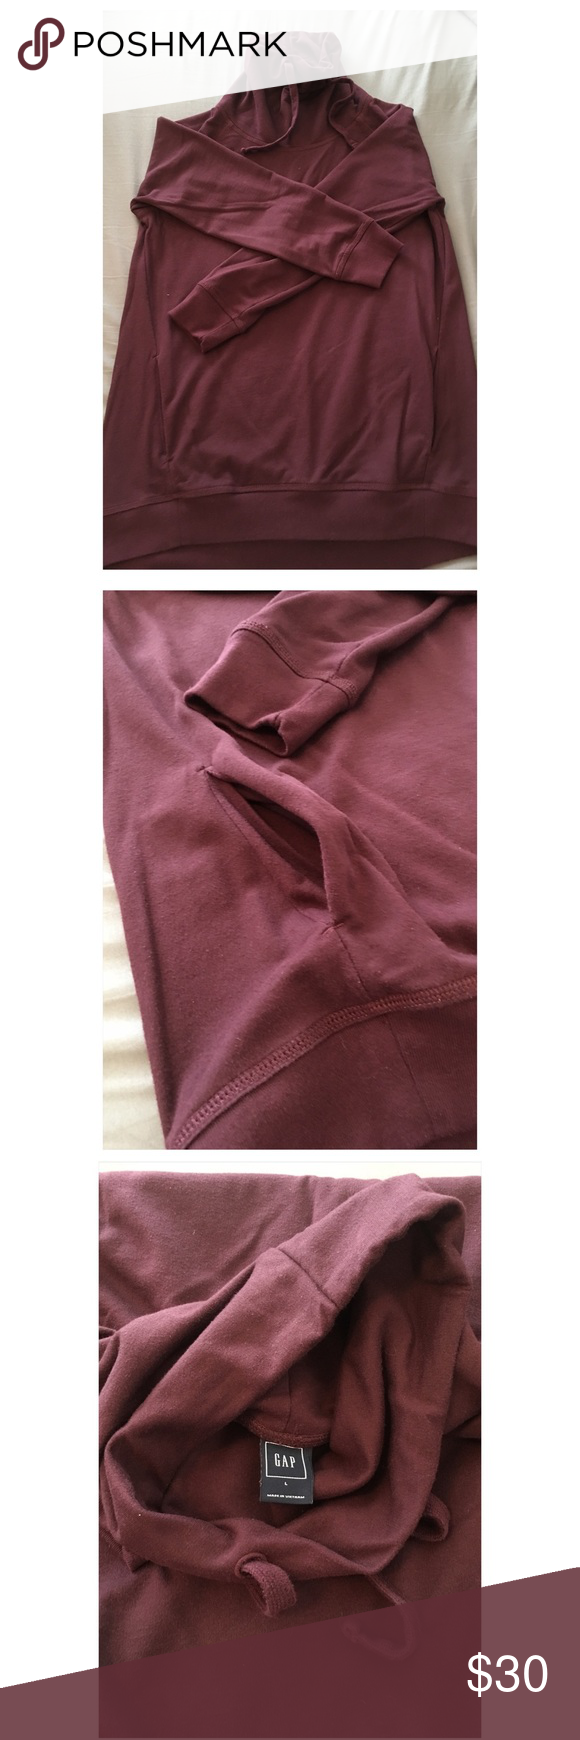 GAP Cowl Neck Sweatshirt GUD Burgundy cowl neck sweatshirt - worn a handful of times - super comfy - I love this sweatshirt and love the color even more. I wish I could keep it but it's too big on me.  Make me an OFFER & Let's make a DEAL! GAP Sweaters Cowl & Turtlenecks